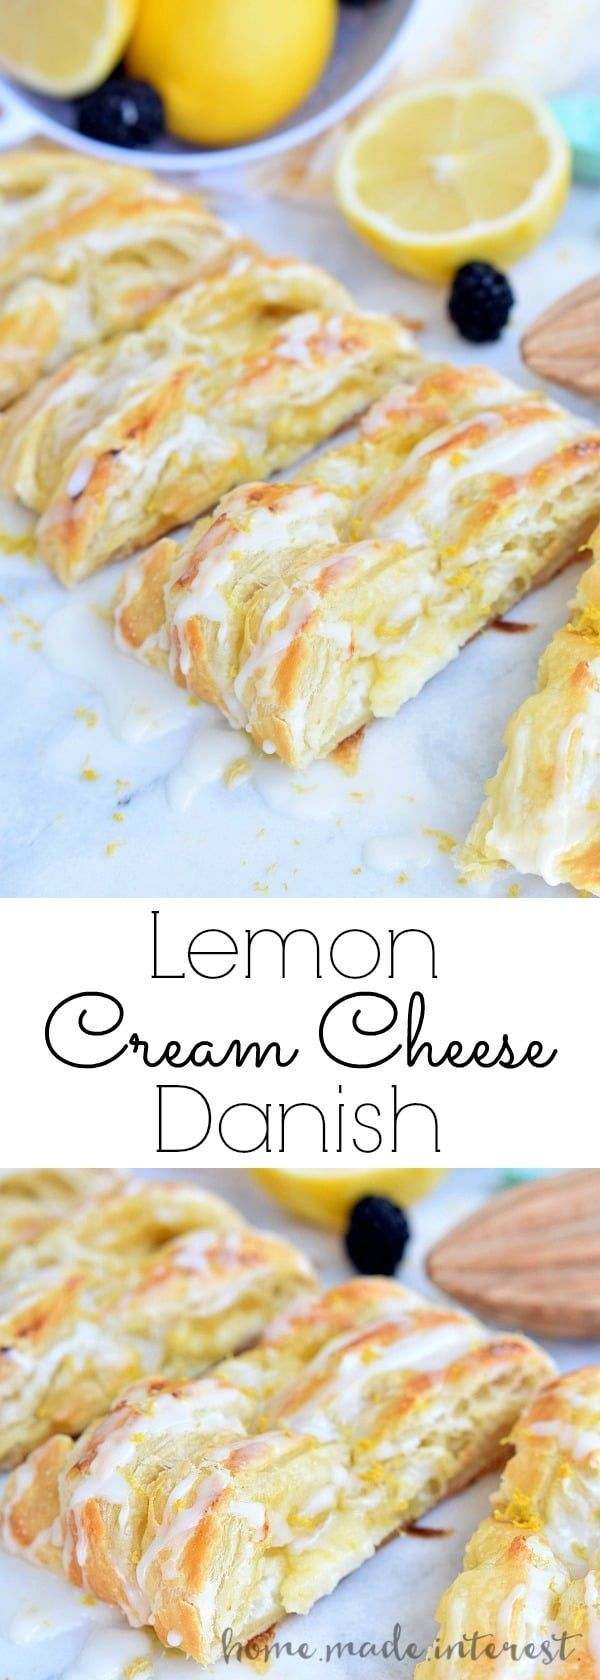 This flaky Lemon Cream Cheese Danish